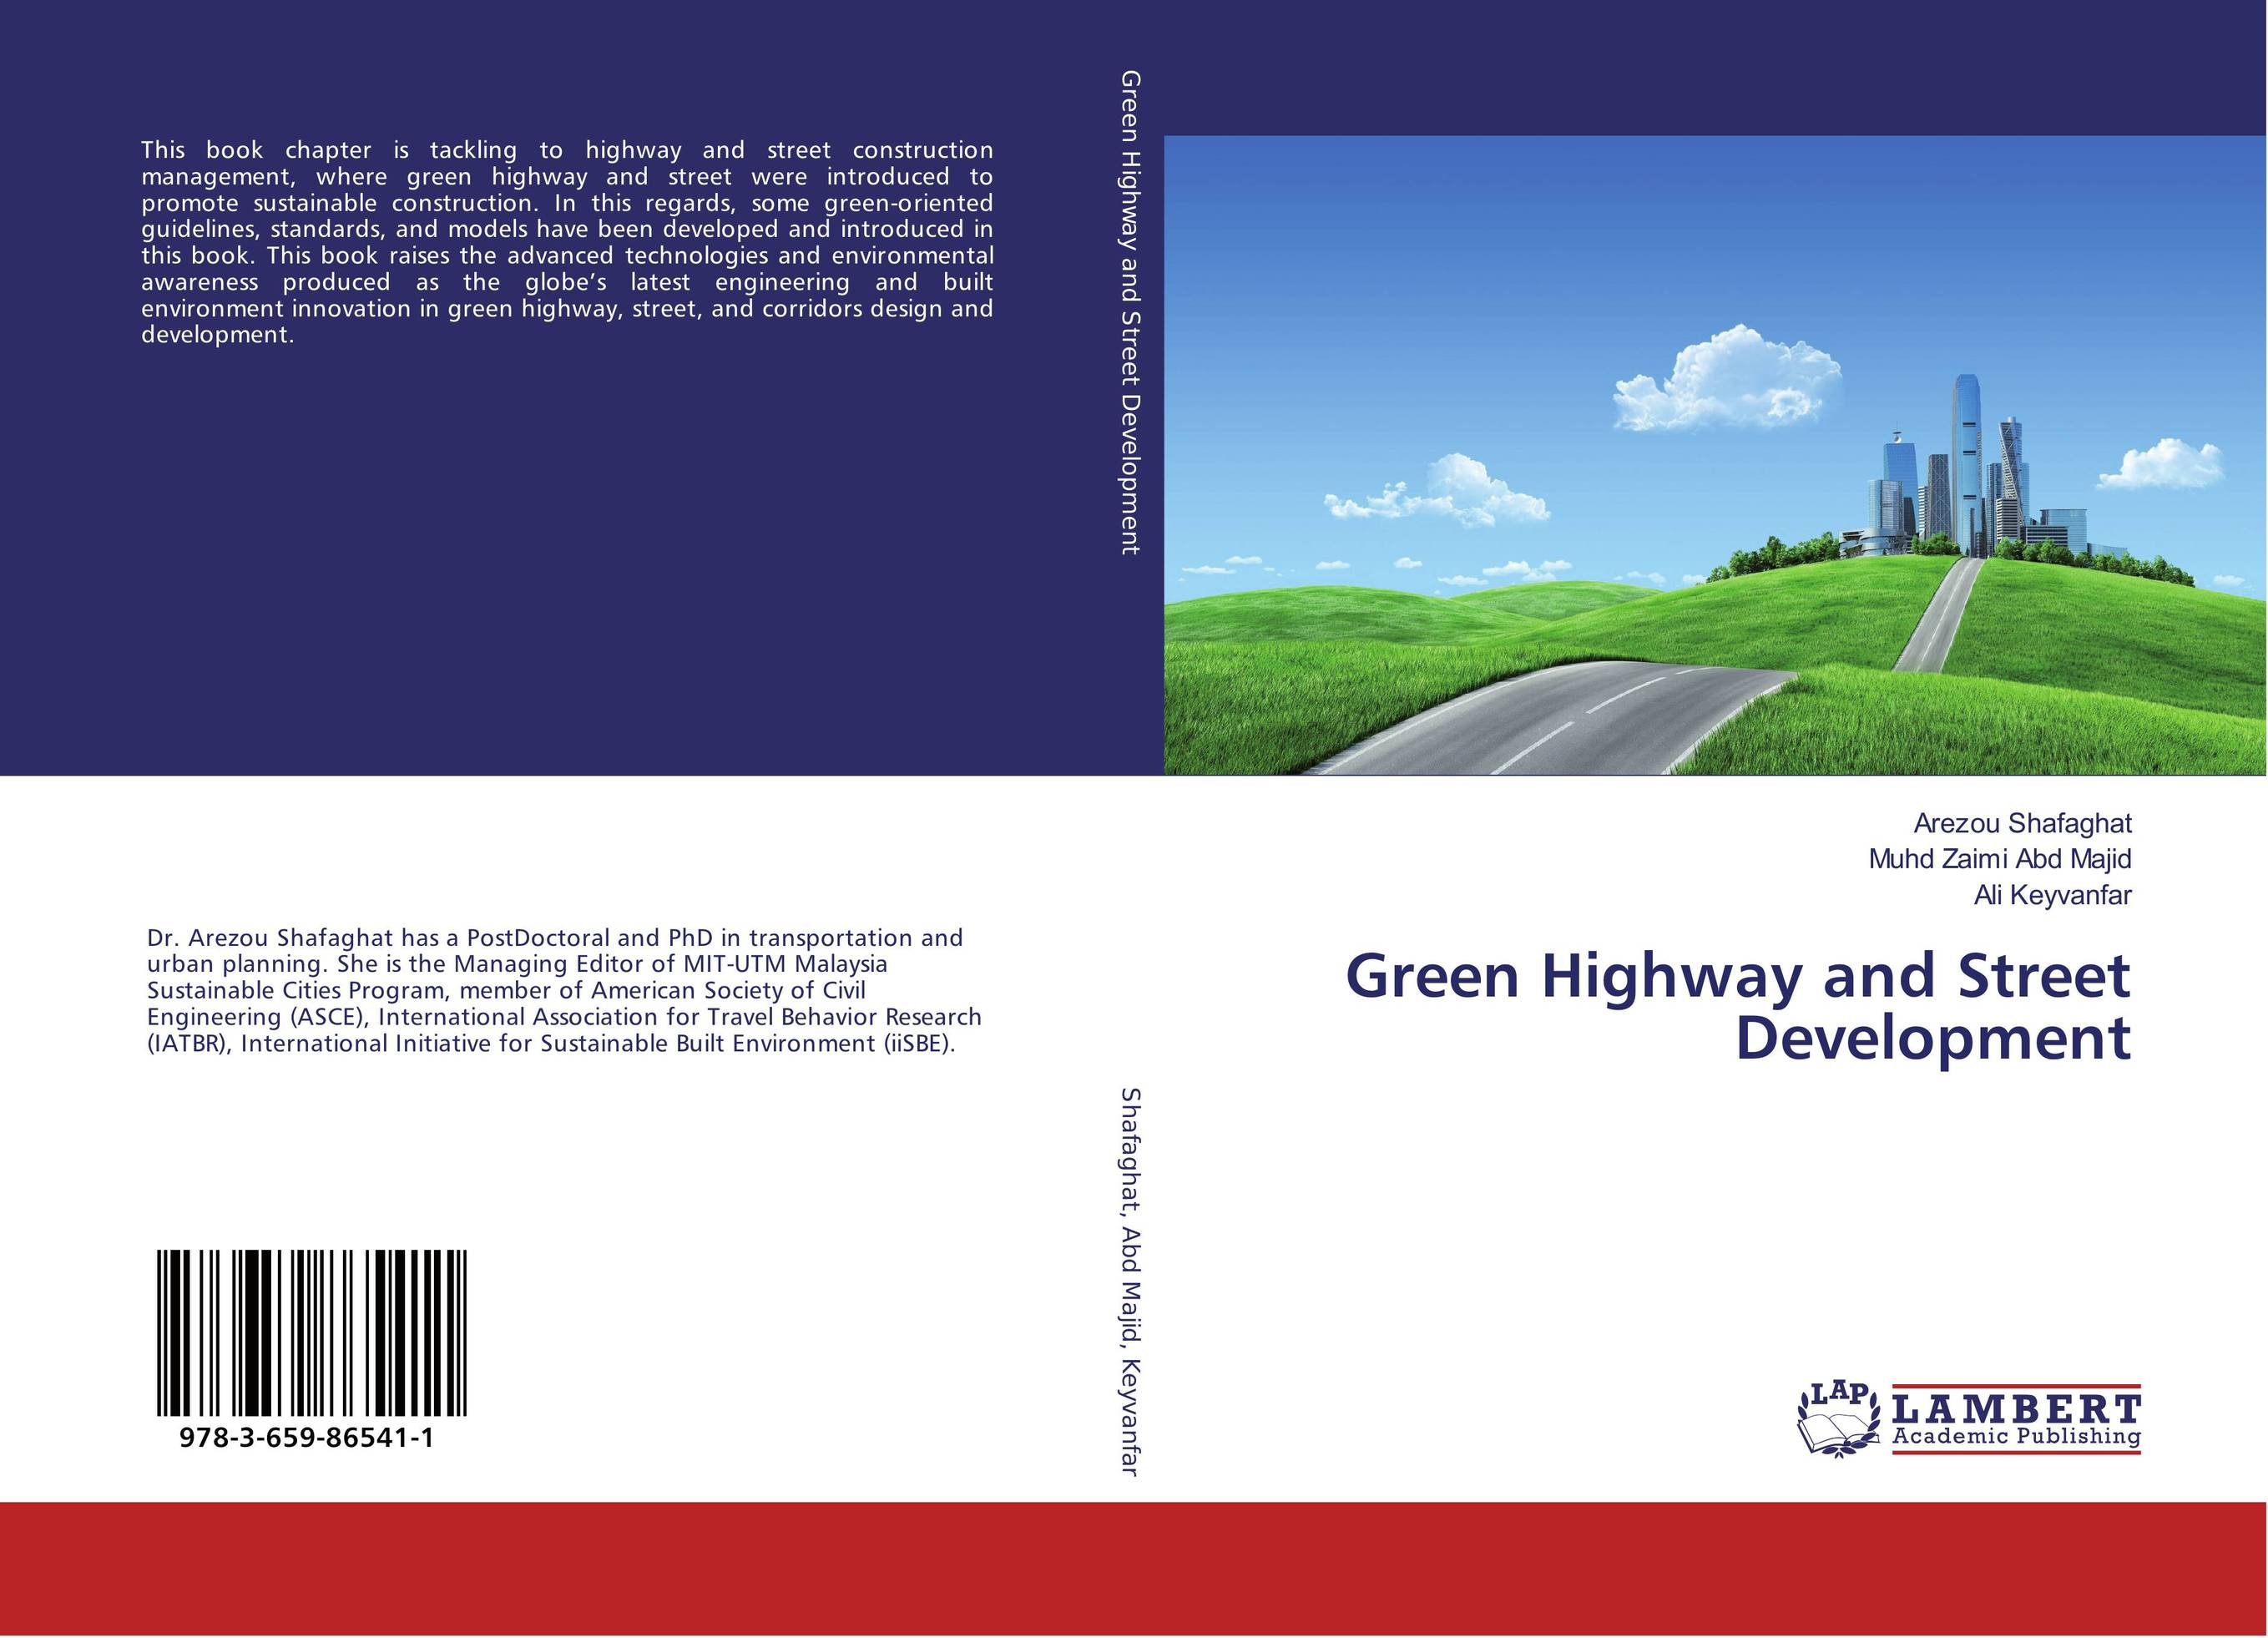 Green Highway and Street Development green gdp for sustainable development in india